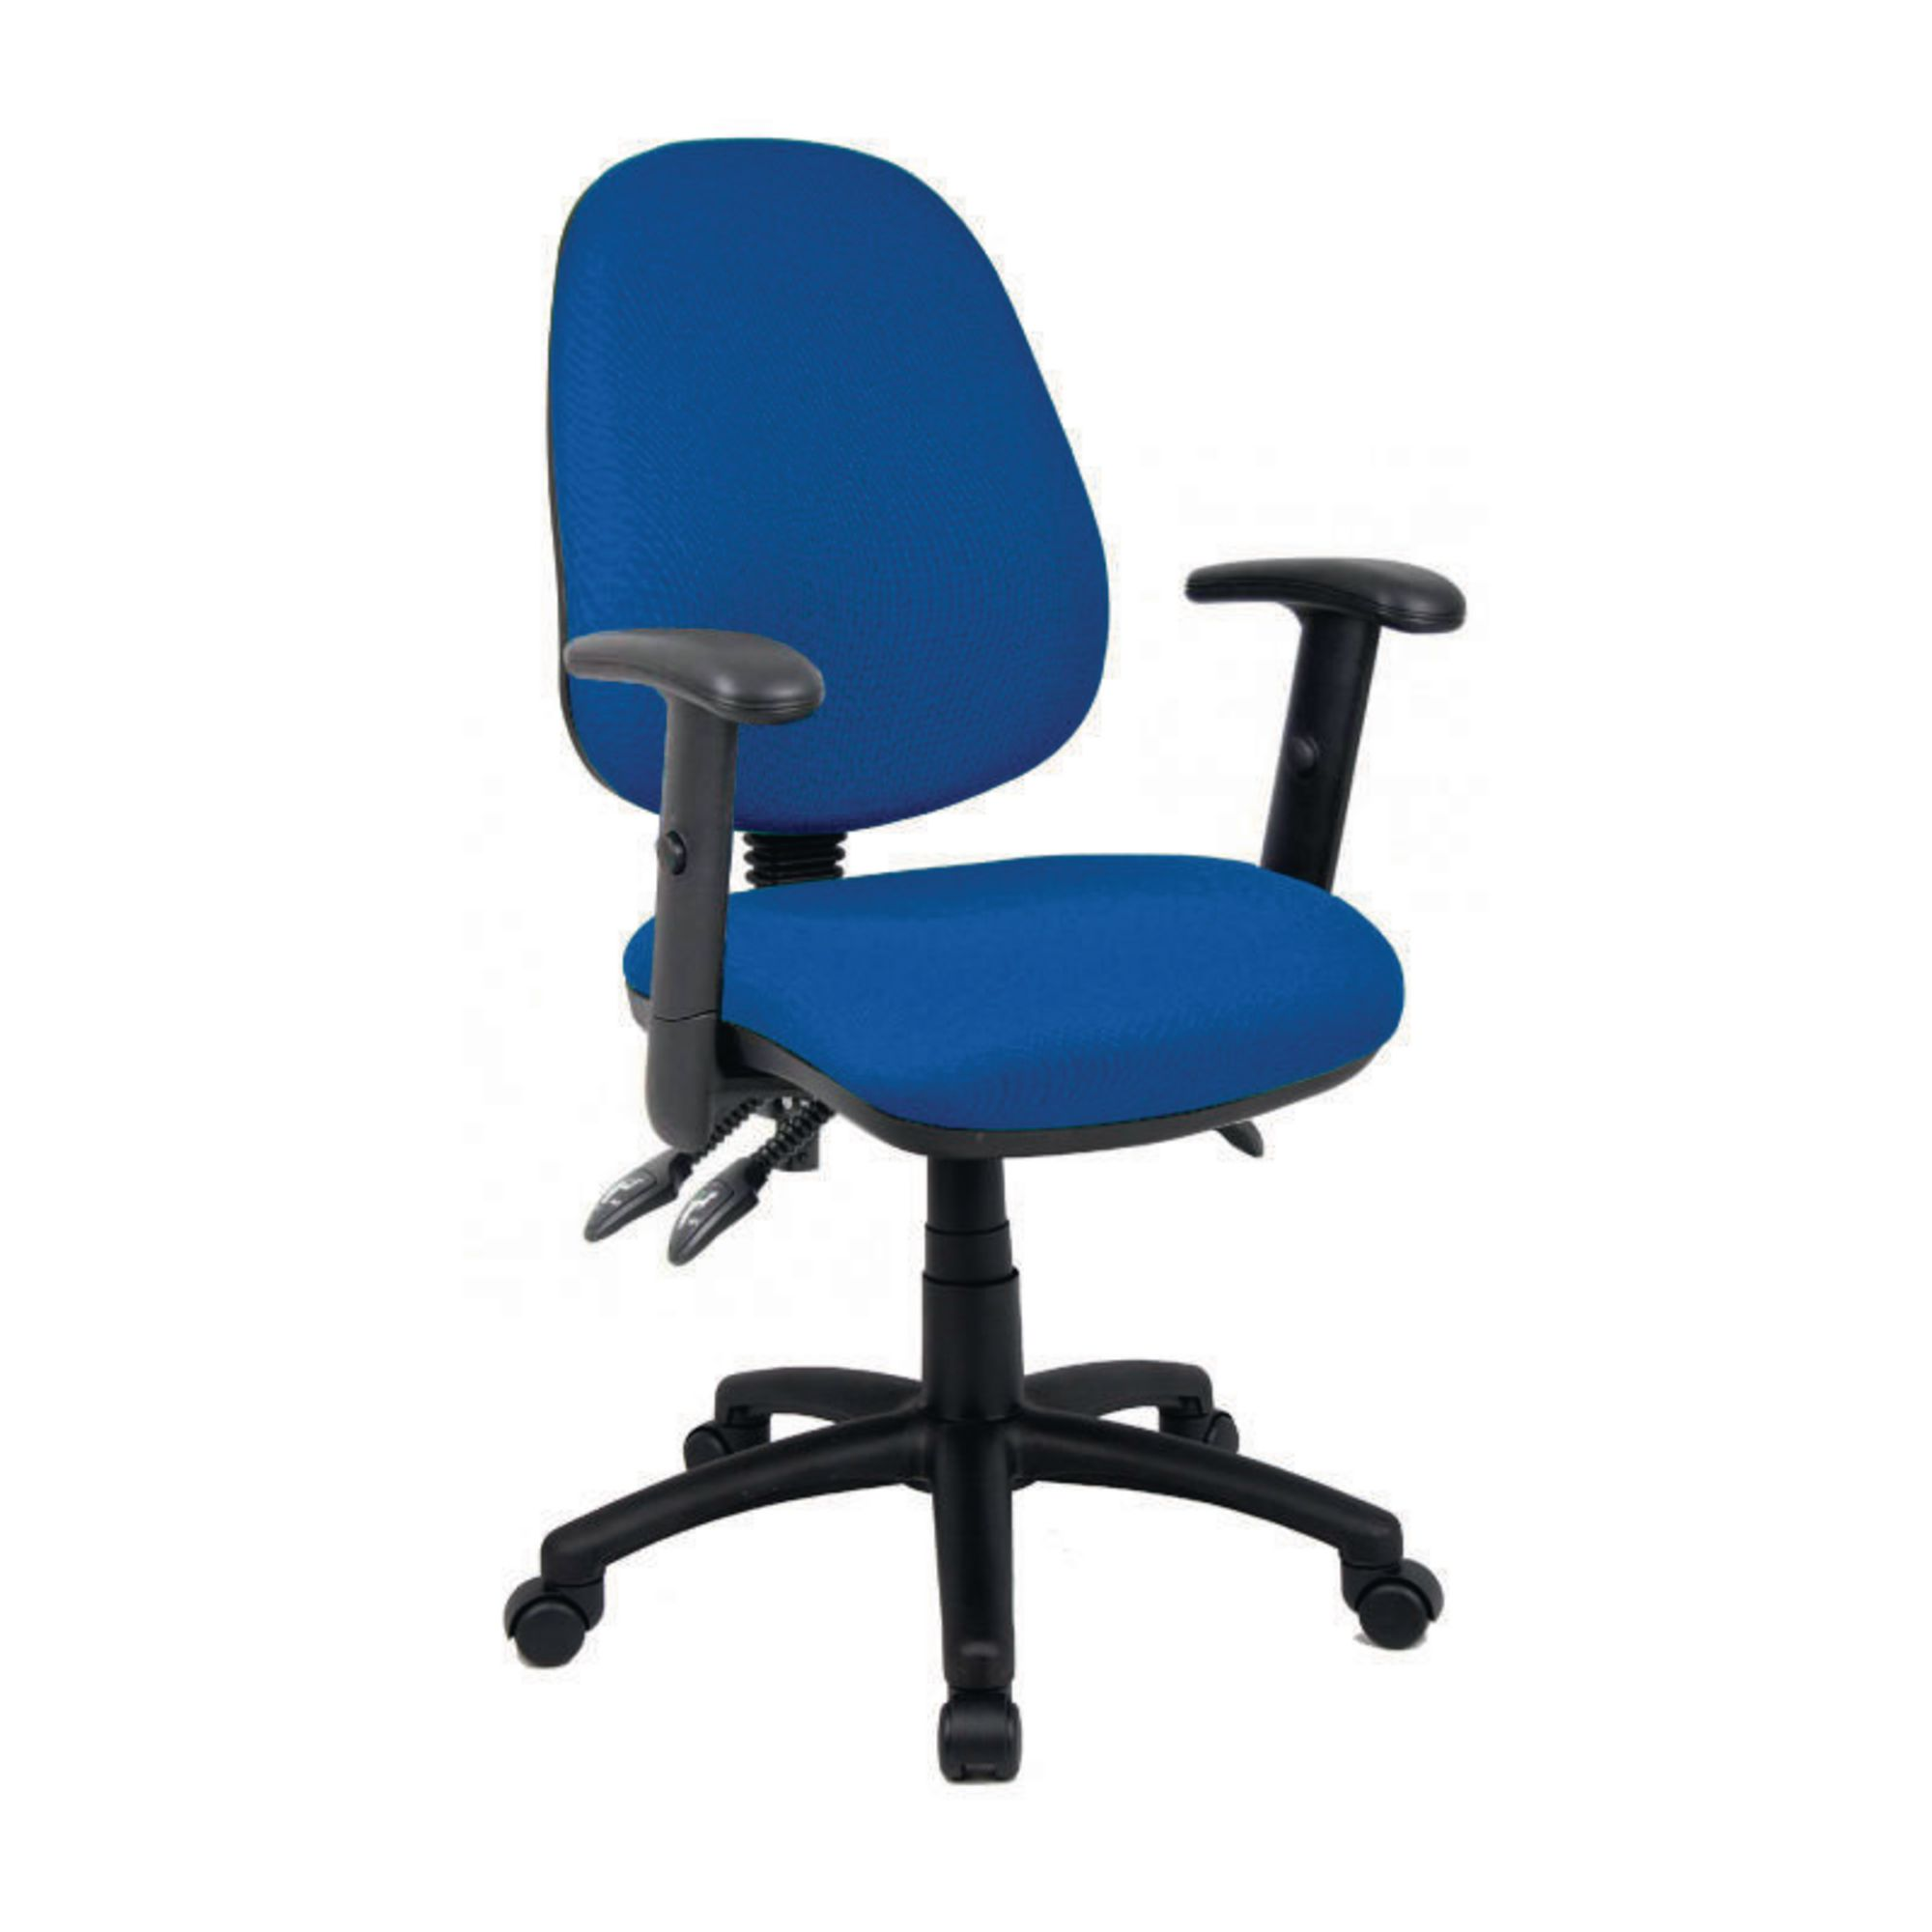 office chair ballet rail with beadboard vantage 3 lever adjust arms blue gls educational